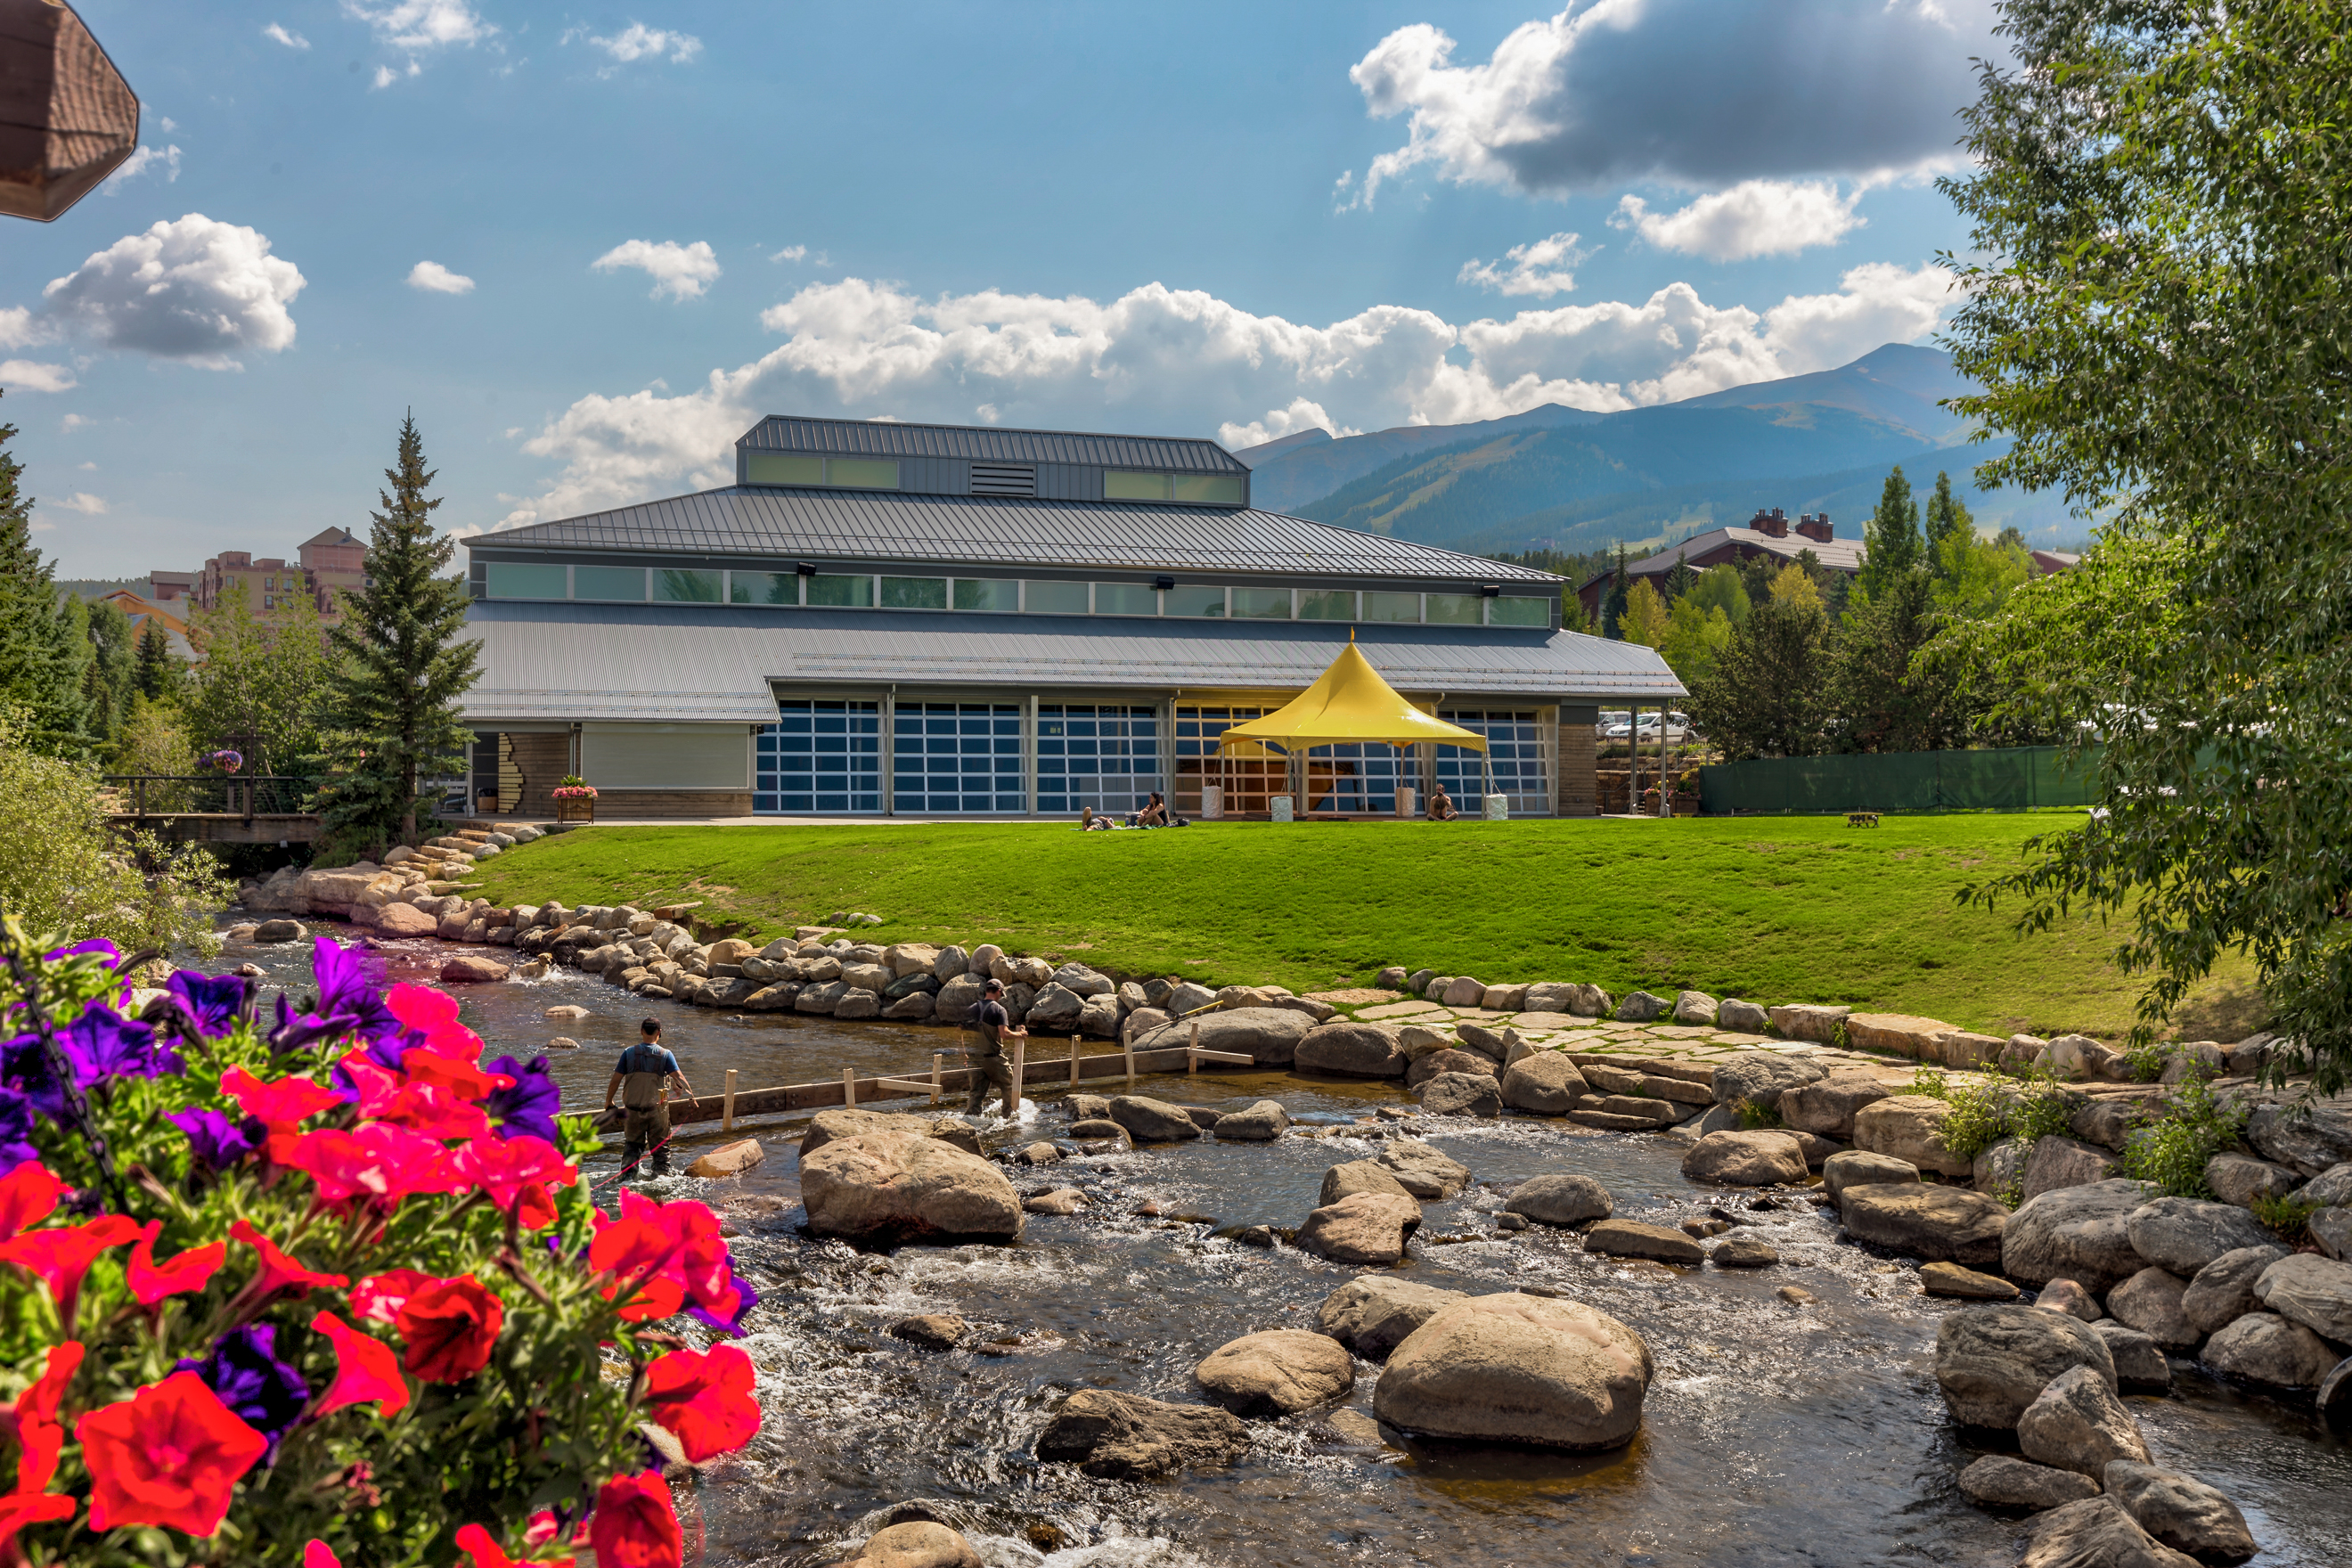 Rivewalk Center in Breckenridge